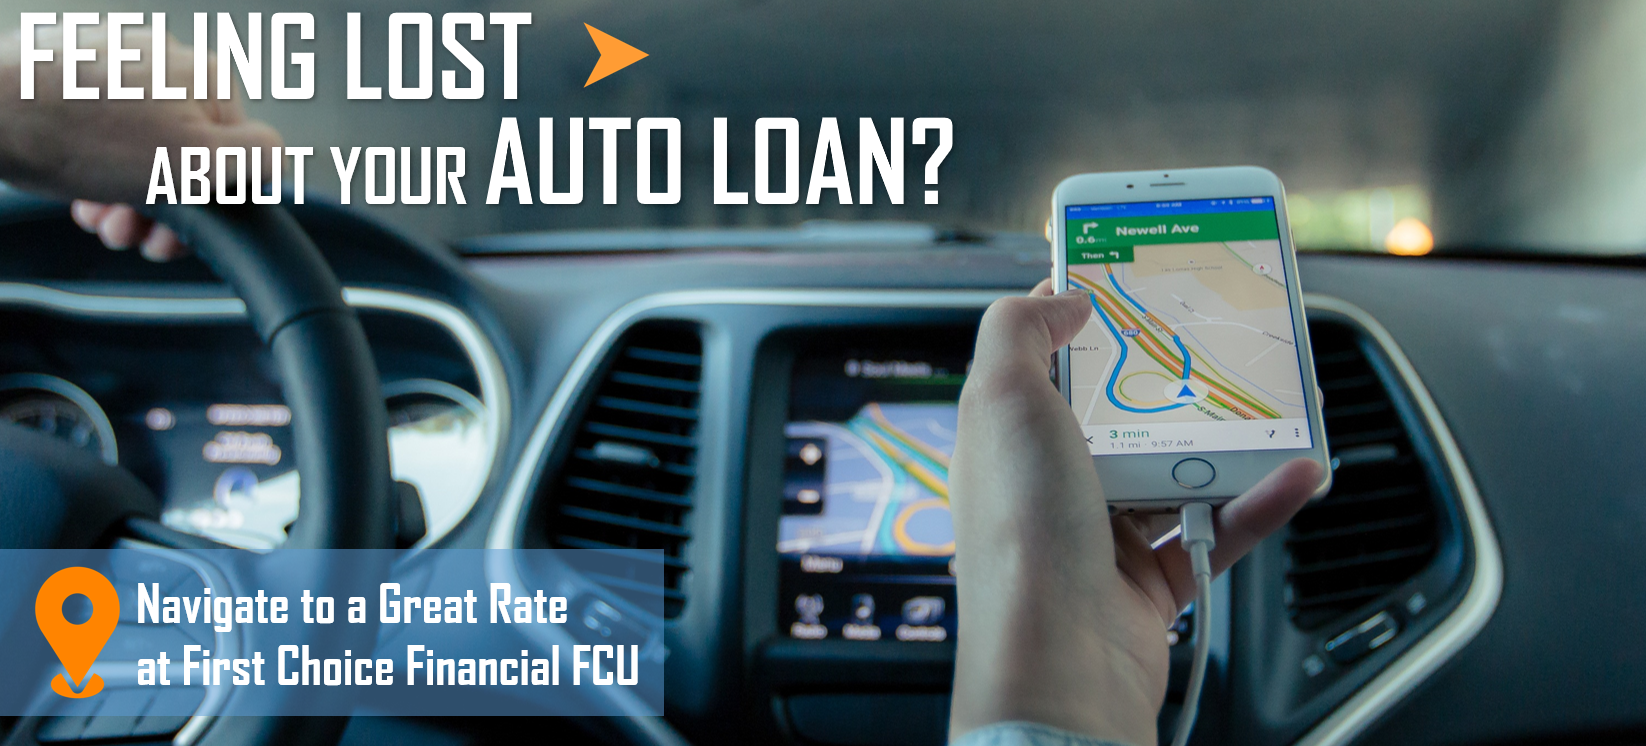 Car with GPS and auto loan rate